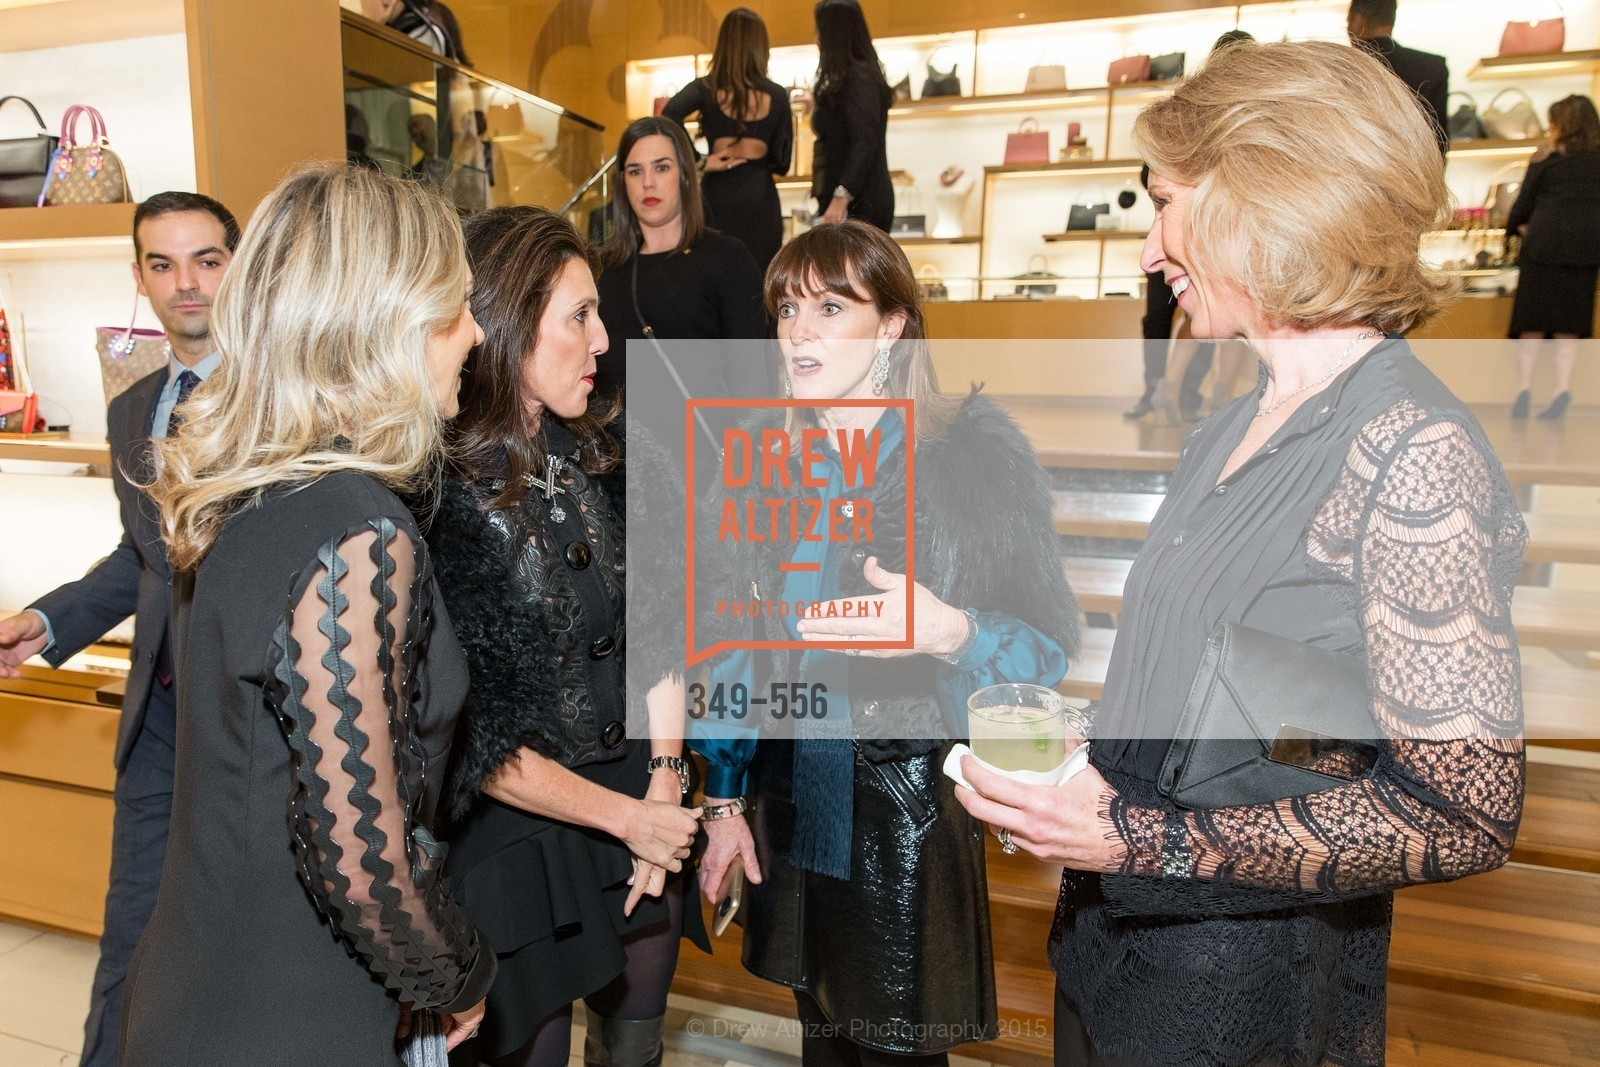 Juliet de Baubigny, Sloan Barnett, Allison Speer, Mikey Hoag, ELLE and Louis Vuitton Resort 2016, Louis Vuitton. 233 Geary Street, November 19th, 2015,Drew Altizer, Drew Altizer Photography, full-service agency, private events, San Francisco photographer, photographer california